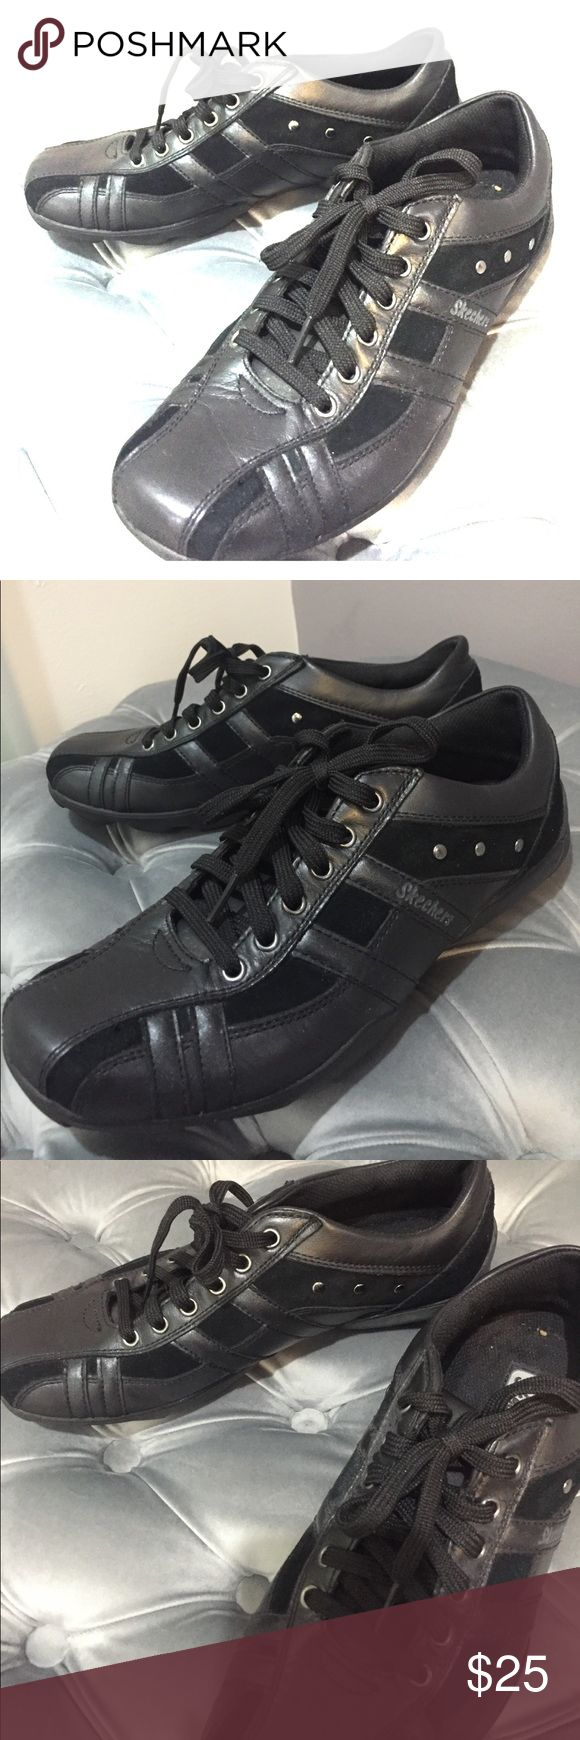 Skechers black shoes with silver studs Skechers black shoes with silver studs. Size 8.5 US. Worn once. Excellent condition. Skechers Shoes Athletic Shoes